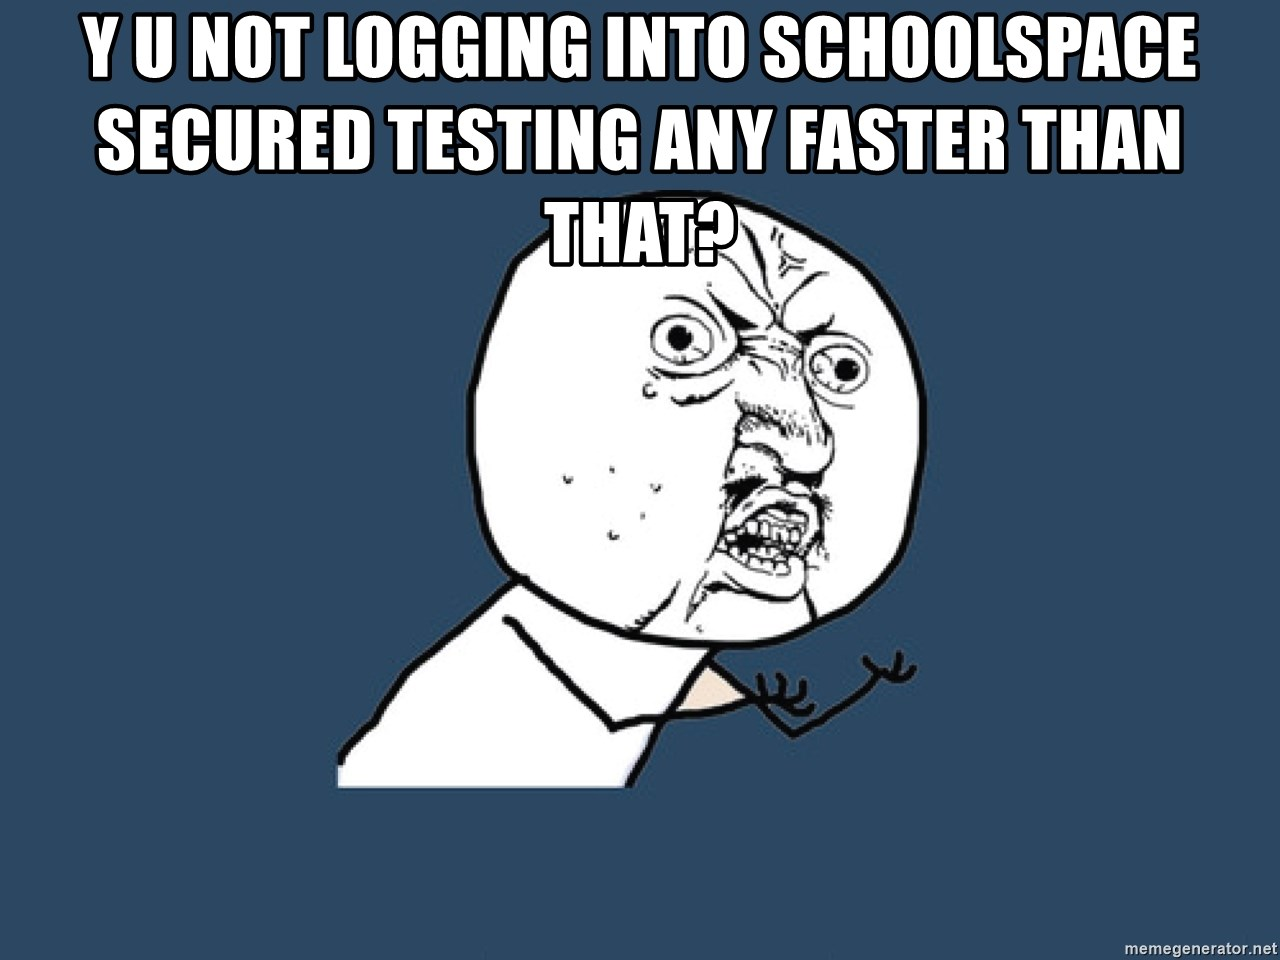 Y U No - y u not logging into schoolspace secured testing any faster than that?